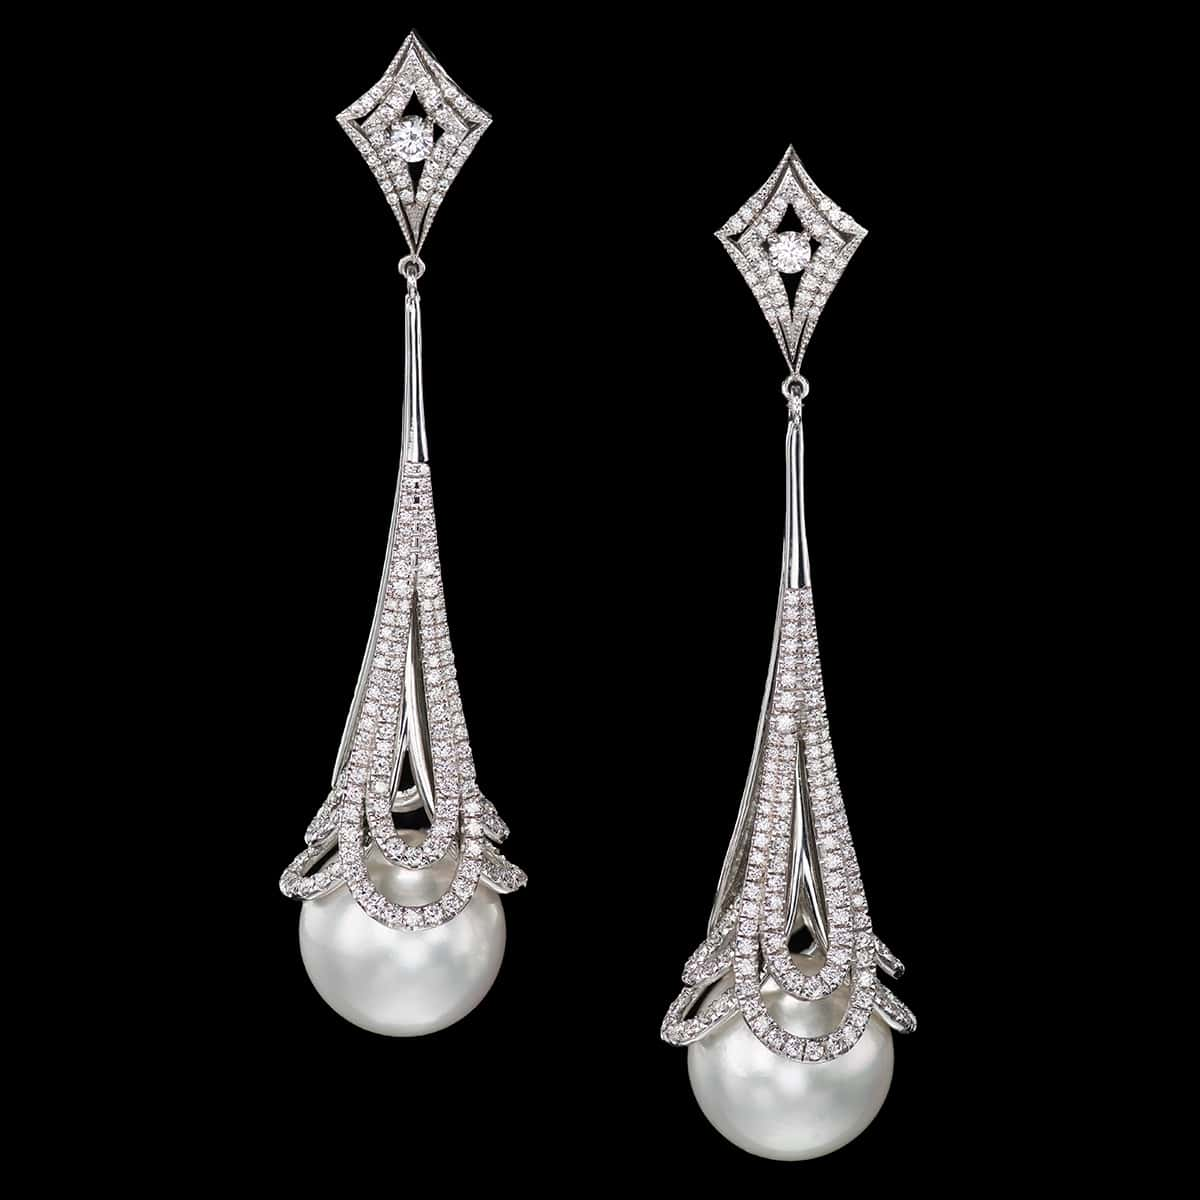 South Sea Pearl Earrings pearls in lace earrings